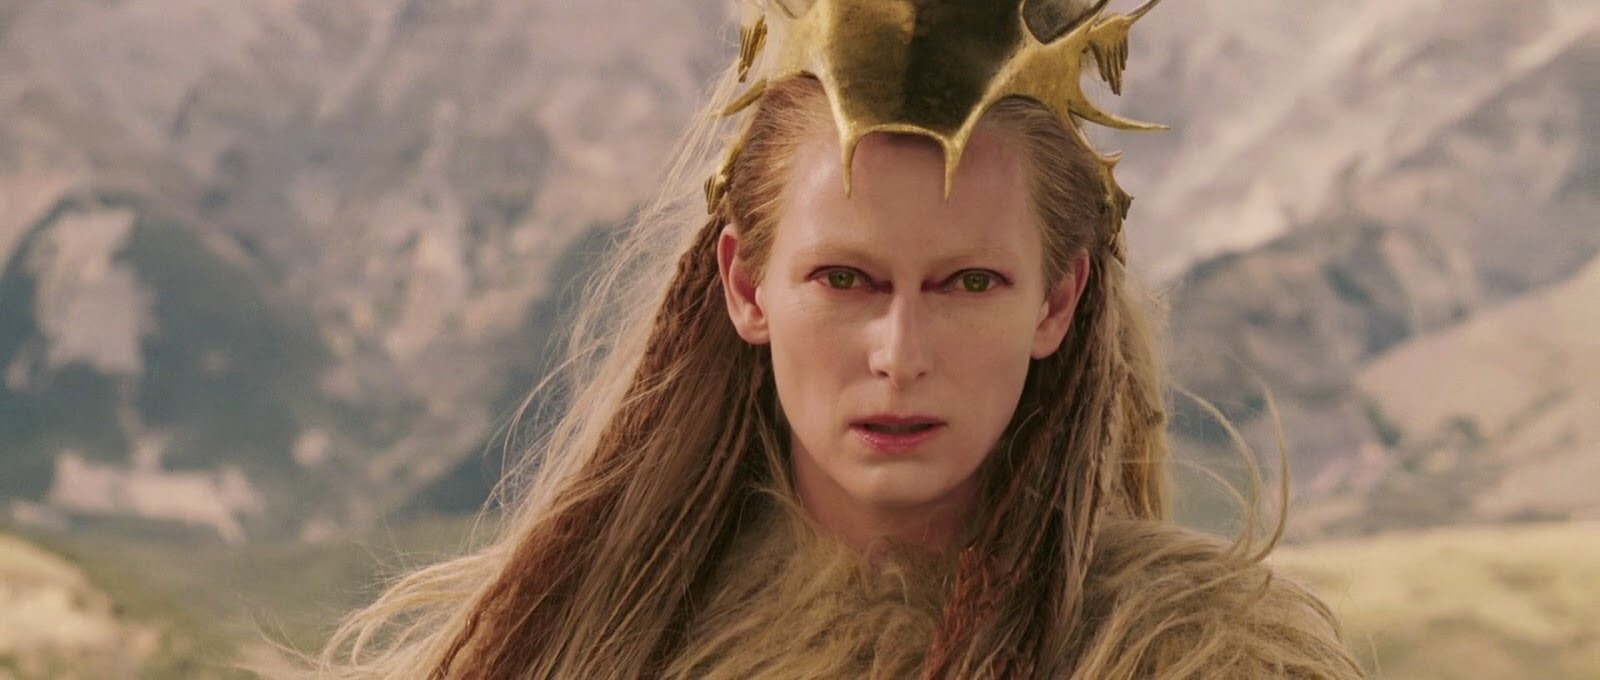 Tilda Swinton in The Chronicles of Narnia: The Lion, the Witch and the Wardrobe (2005)